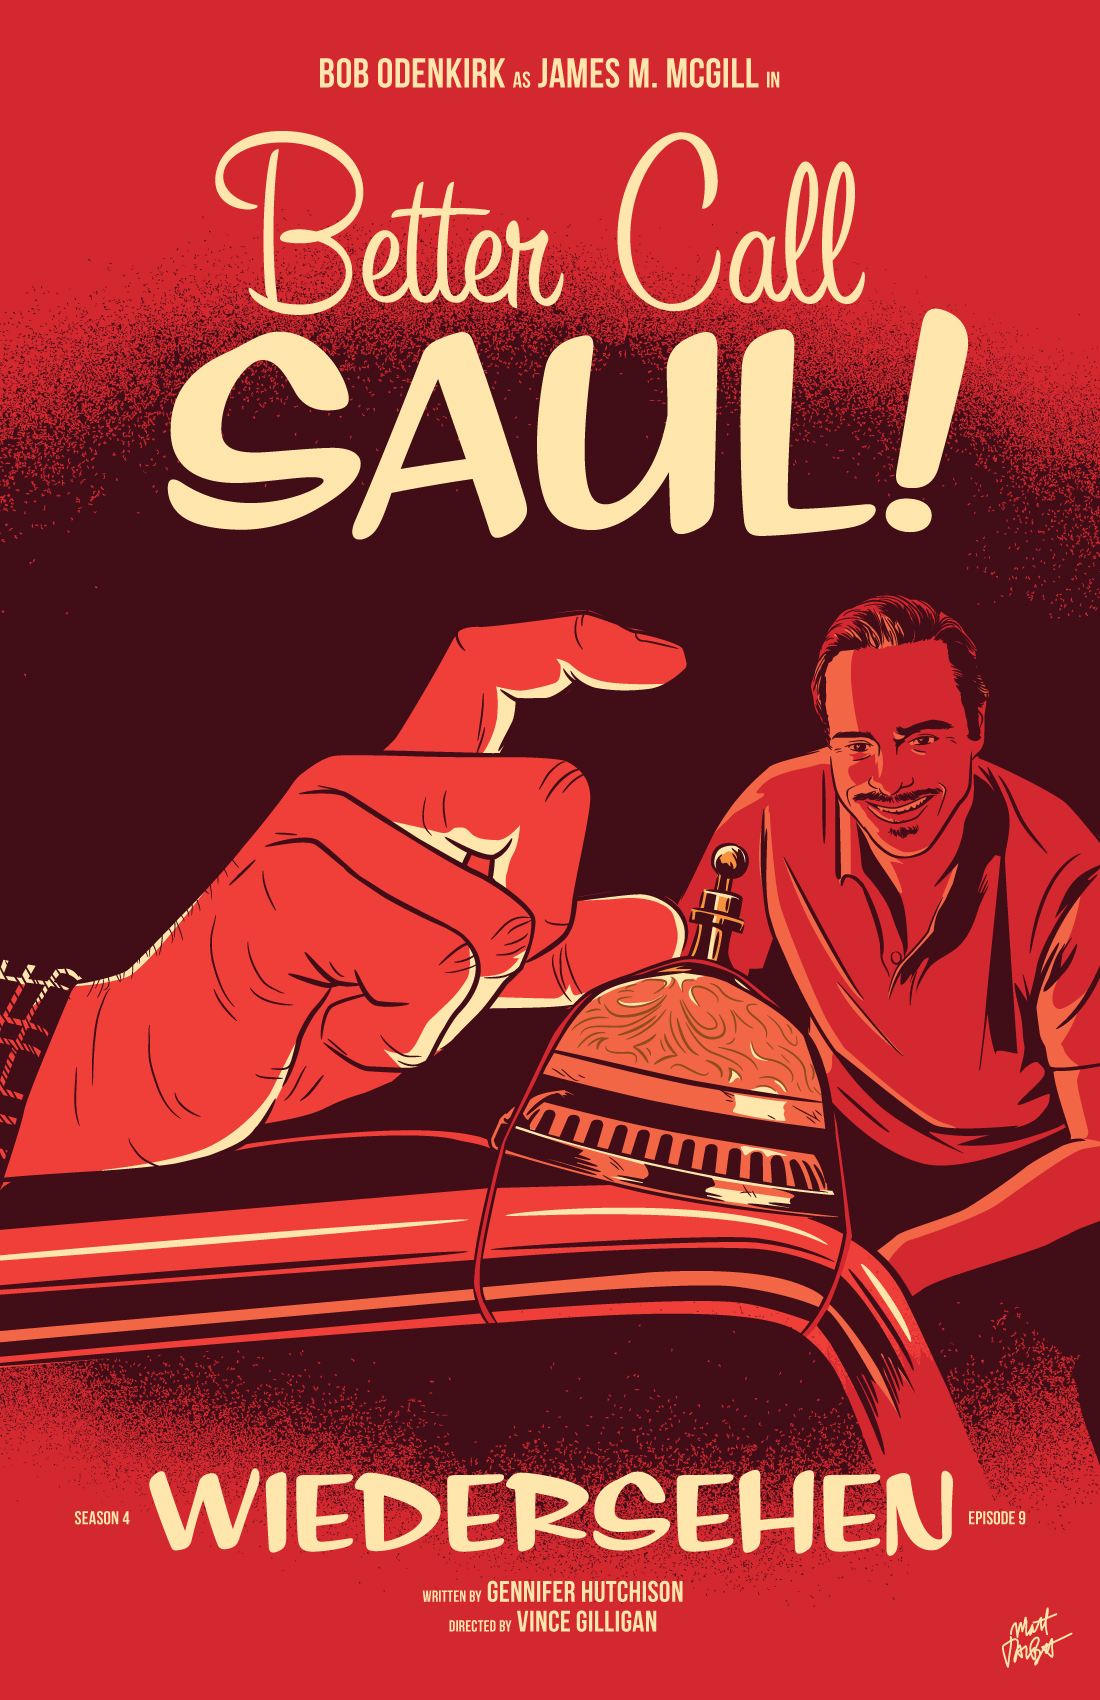 Better Call Saul season 4 episode 9, Wiedersehen, poster by Matt Talbot